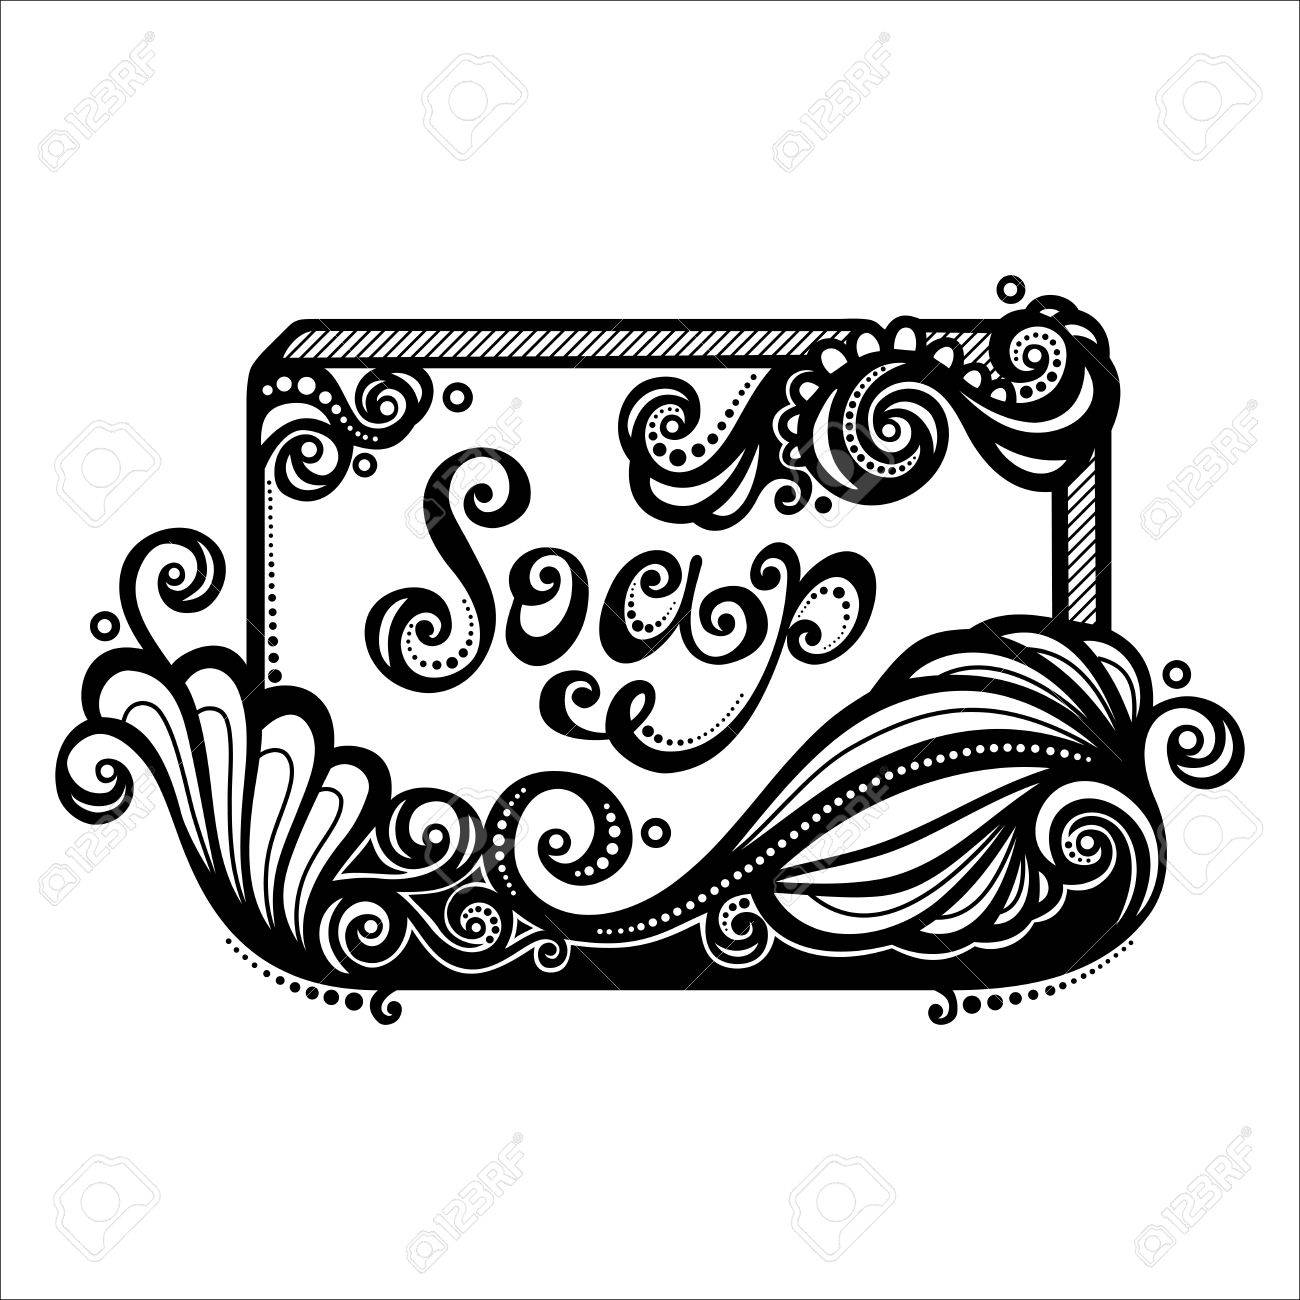 968 Bar Soap Stock Illustrations, Cliparts And Royalty Free Bar ...